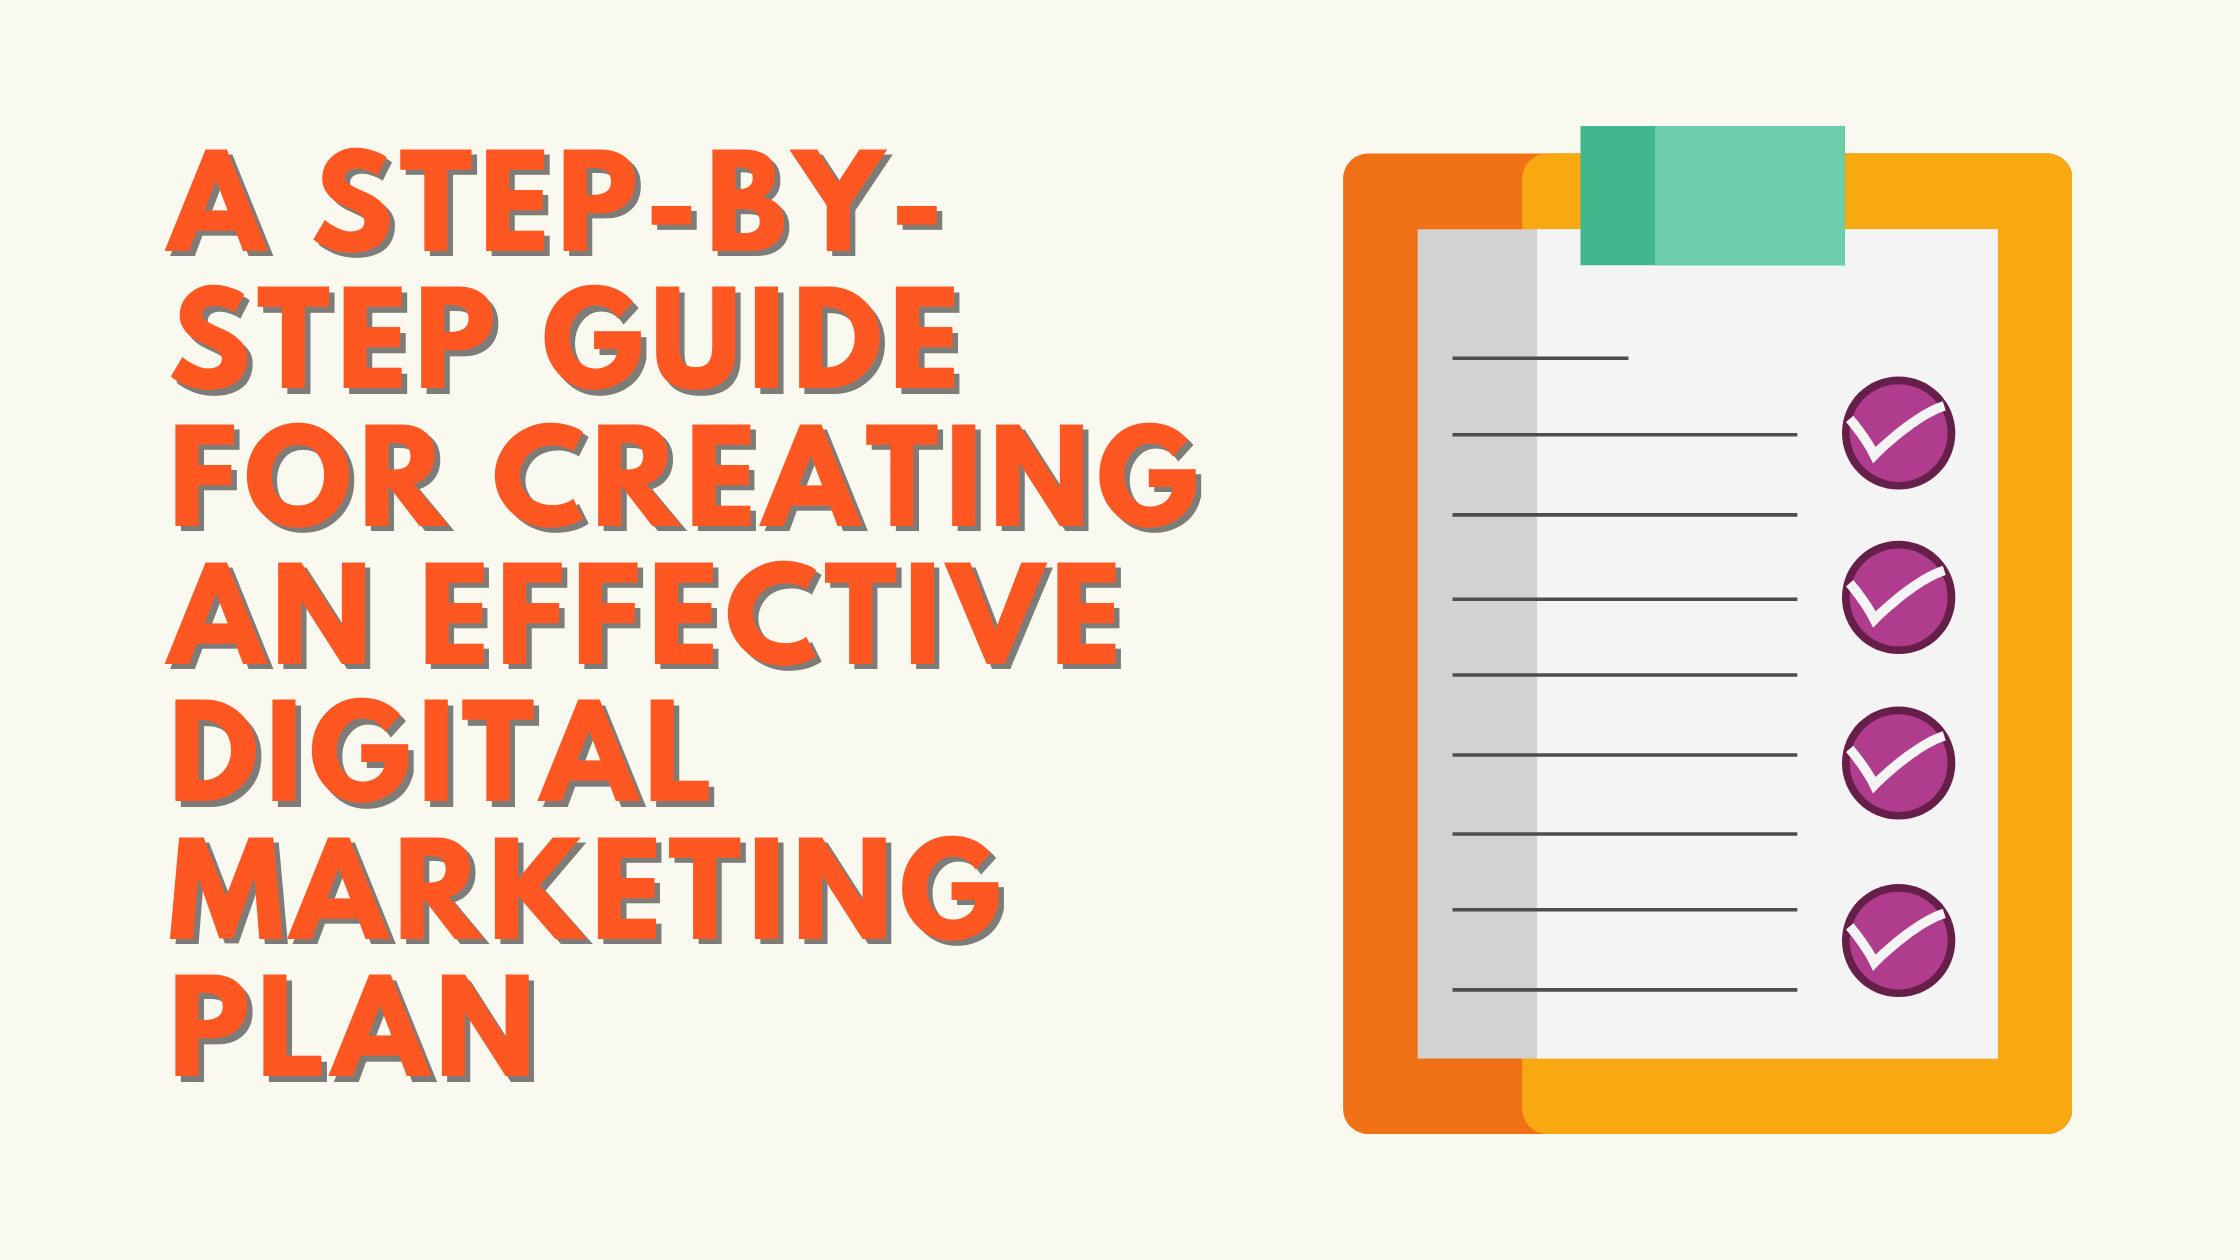 A Step-by-Step Guide for Creating an Effective Digital Marketing Plan